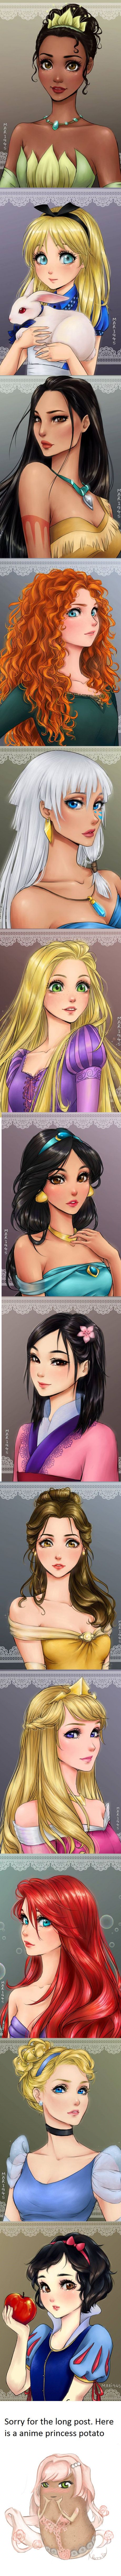 If Disney Princesses were Anime Characters. My fav are Mulan and Jasmine. (by mari945)